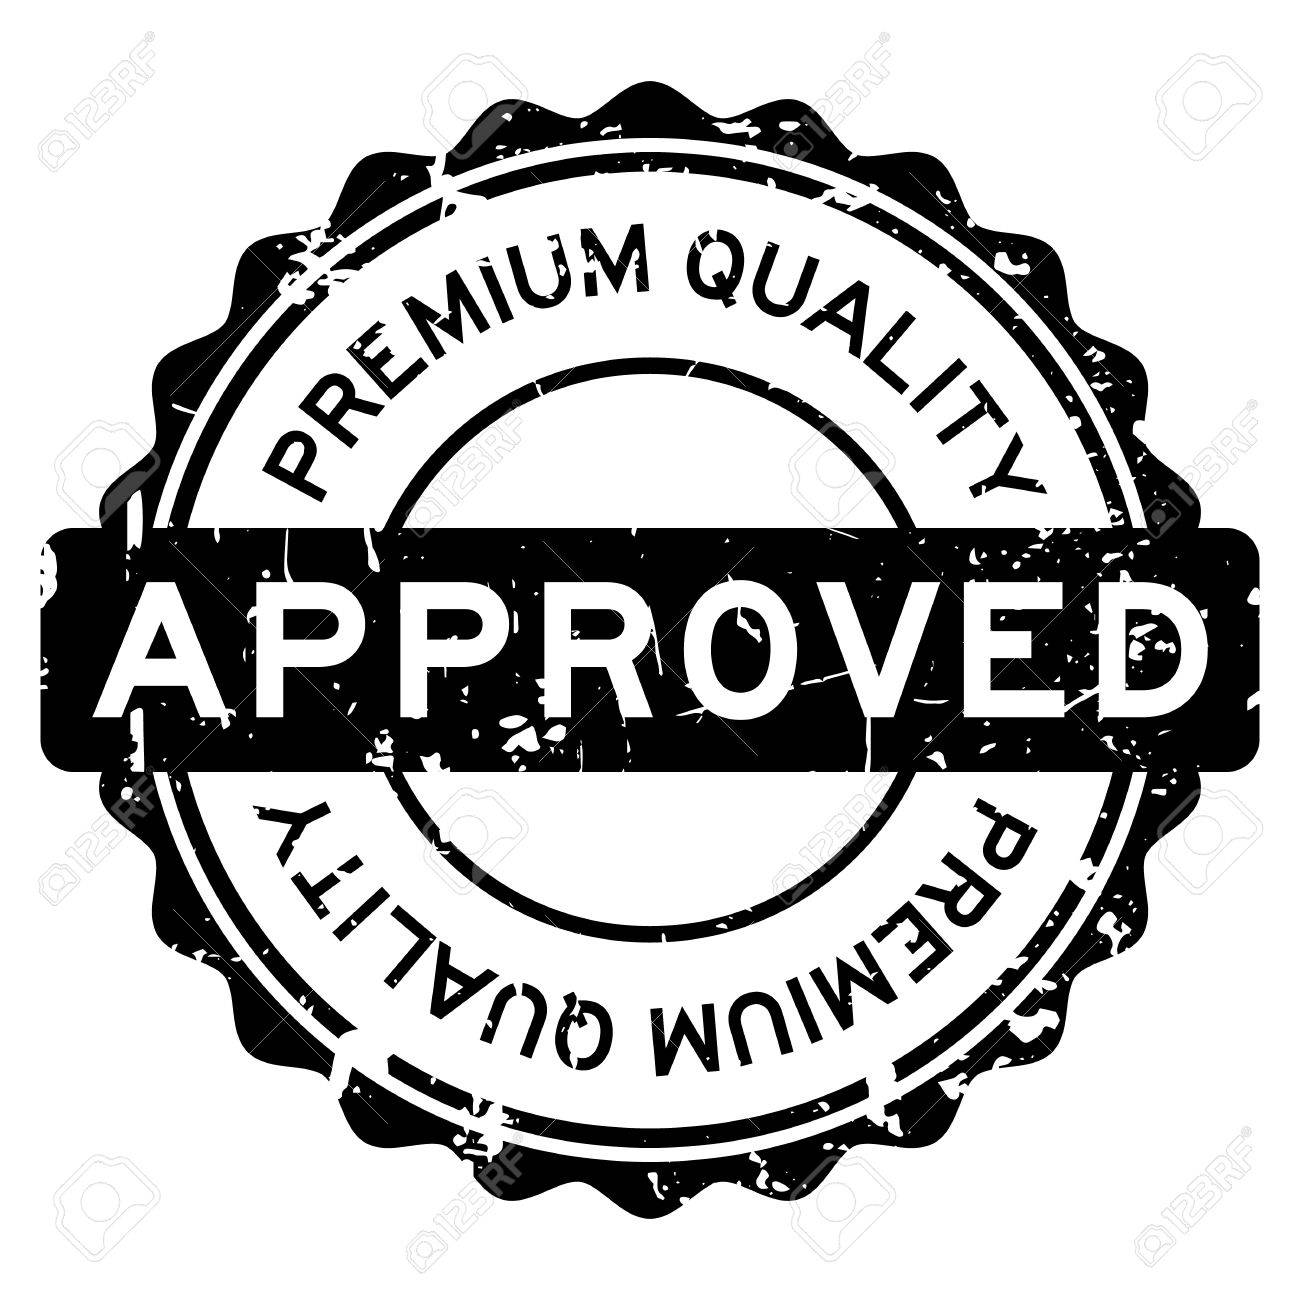 Grunge Black Premium Quality Approved Round Rubber Seal Stamp On White Background Stock Vector